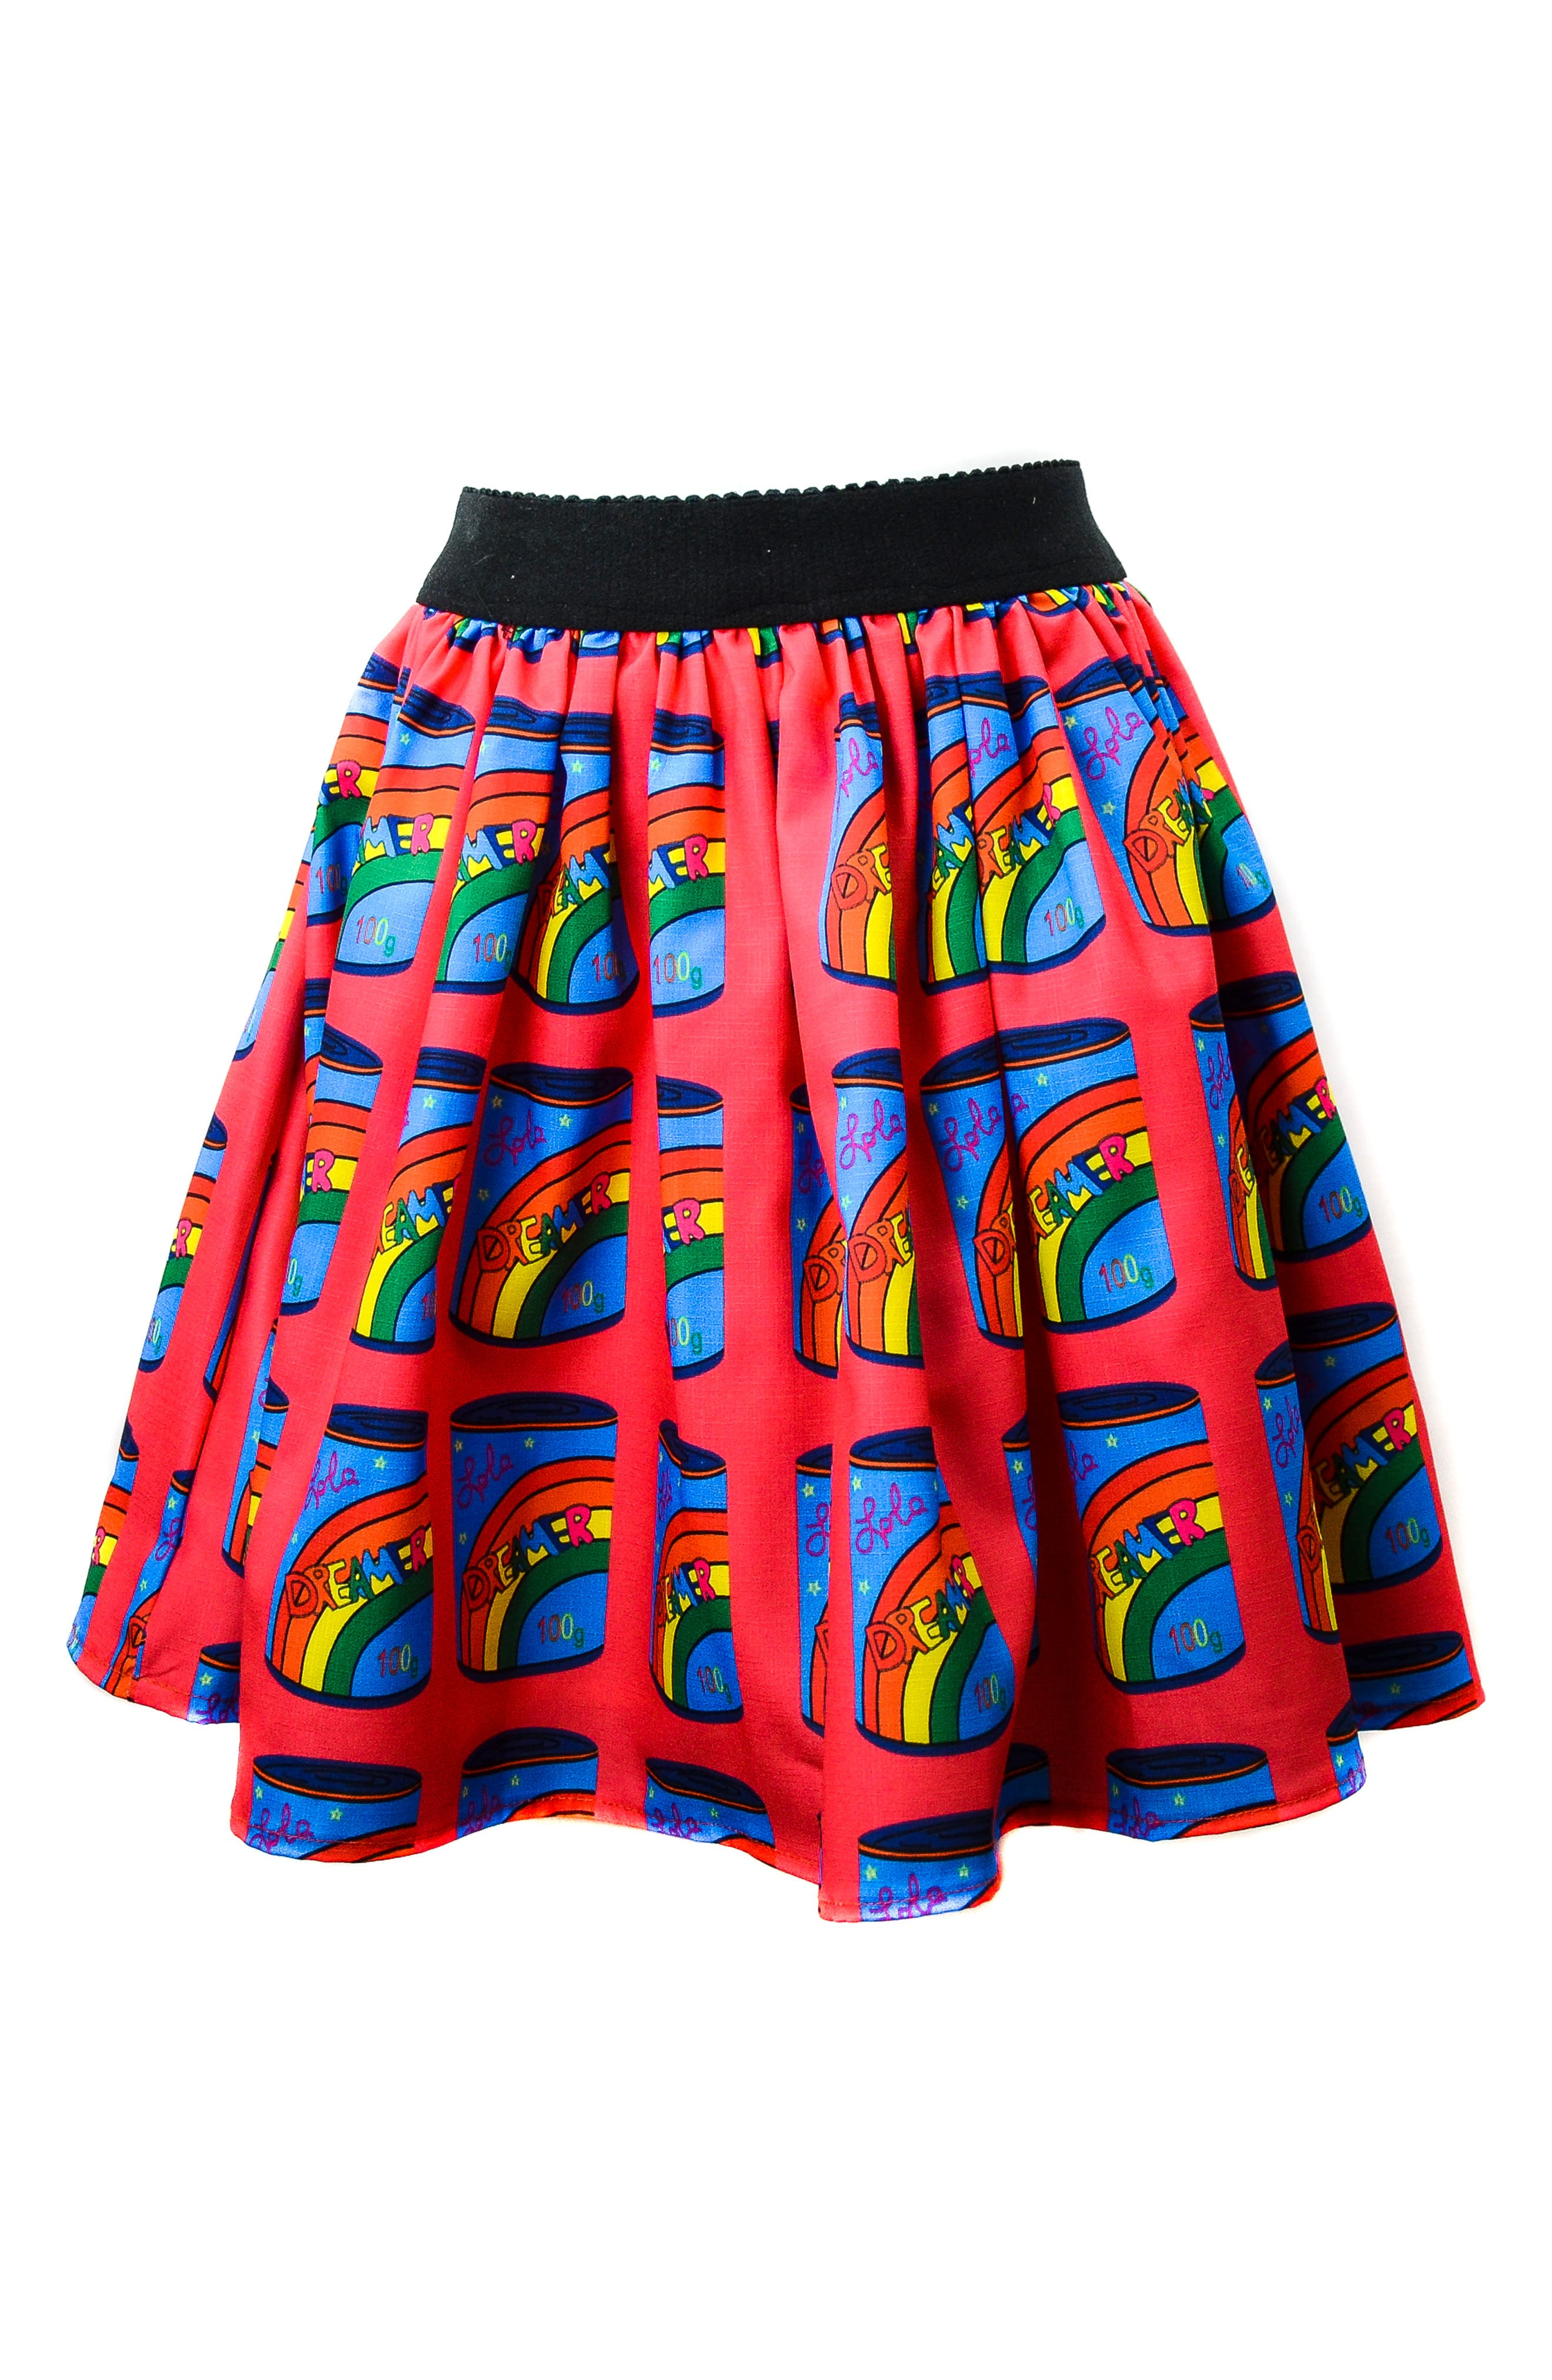 LOLA & THE BOYS Dreamers Can Tutu Skirt, Main, color, RED